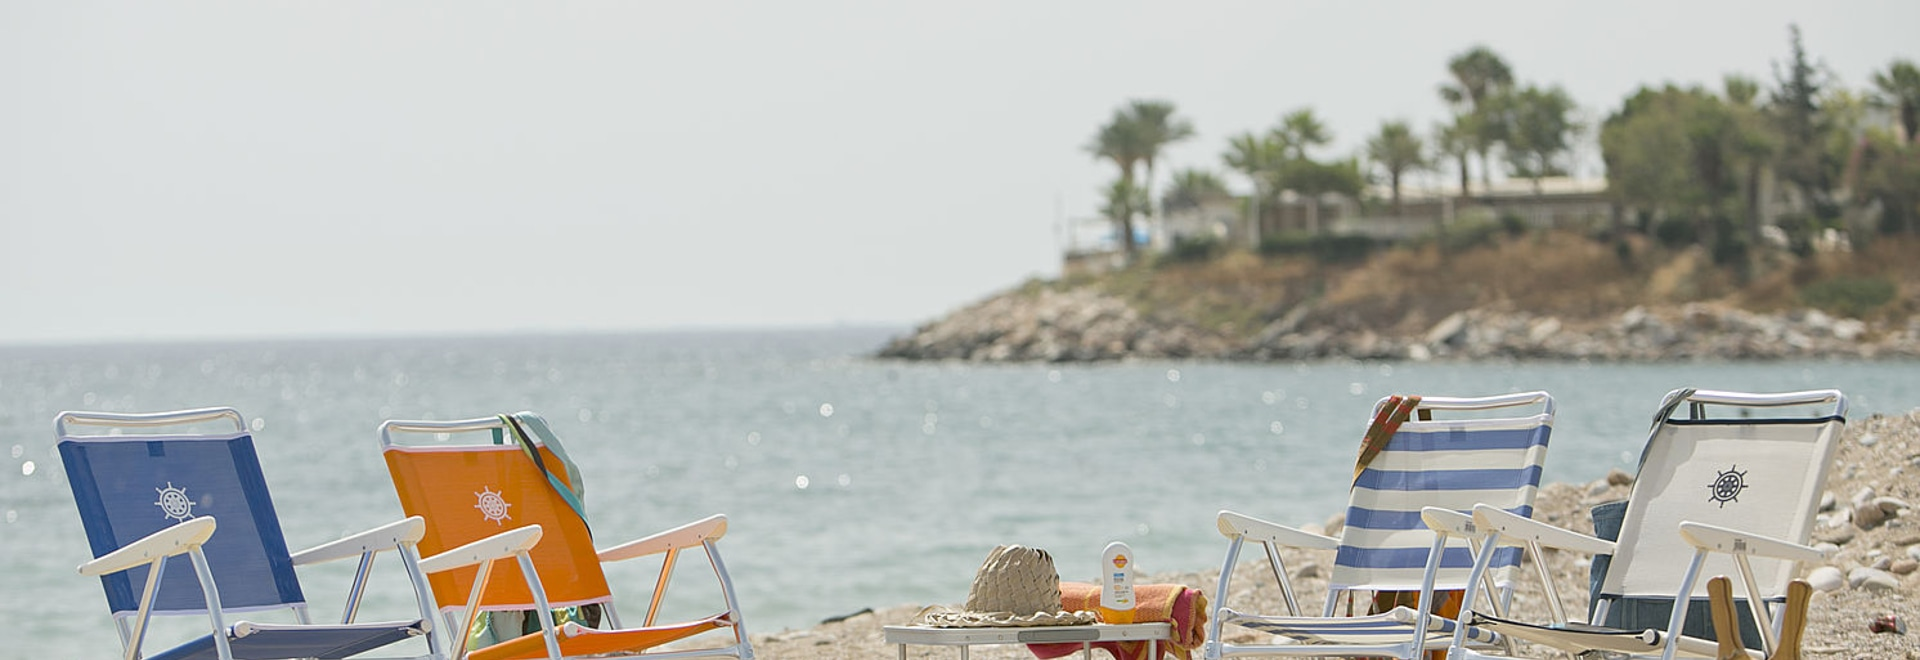 Enjoy your last summer days on FORMA beach chairs PA600B